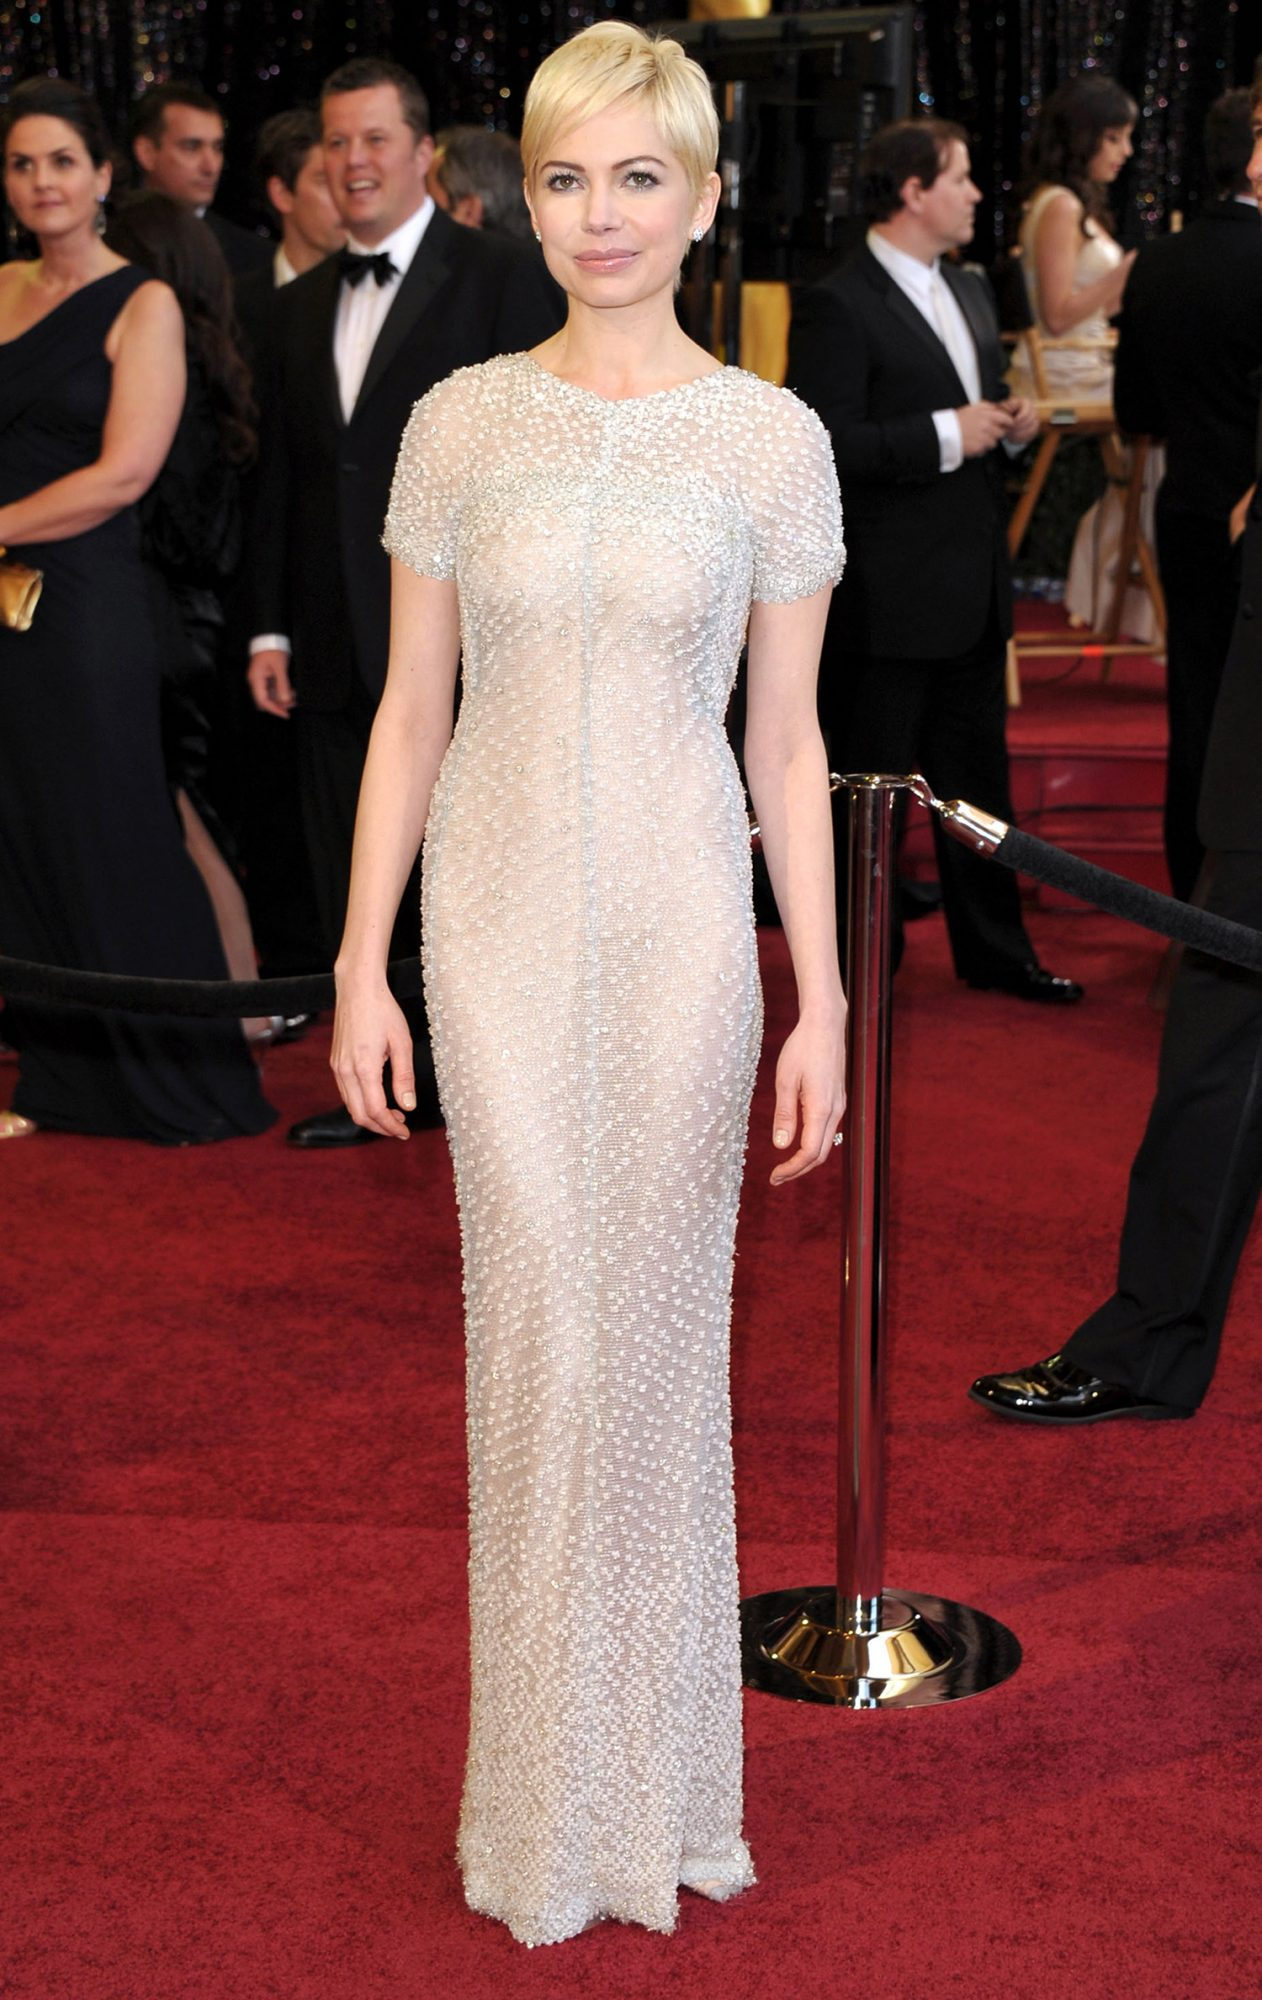 2011 Academy Awards, Michelle Williams